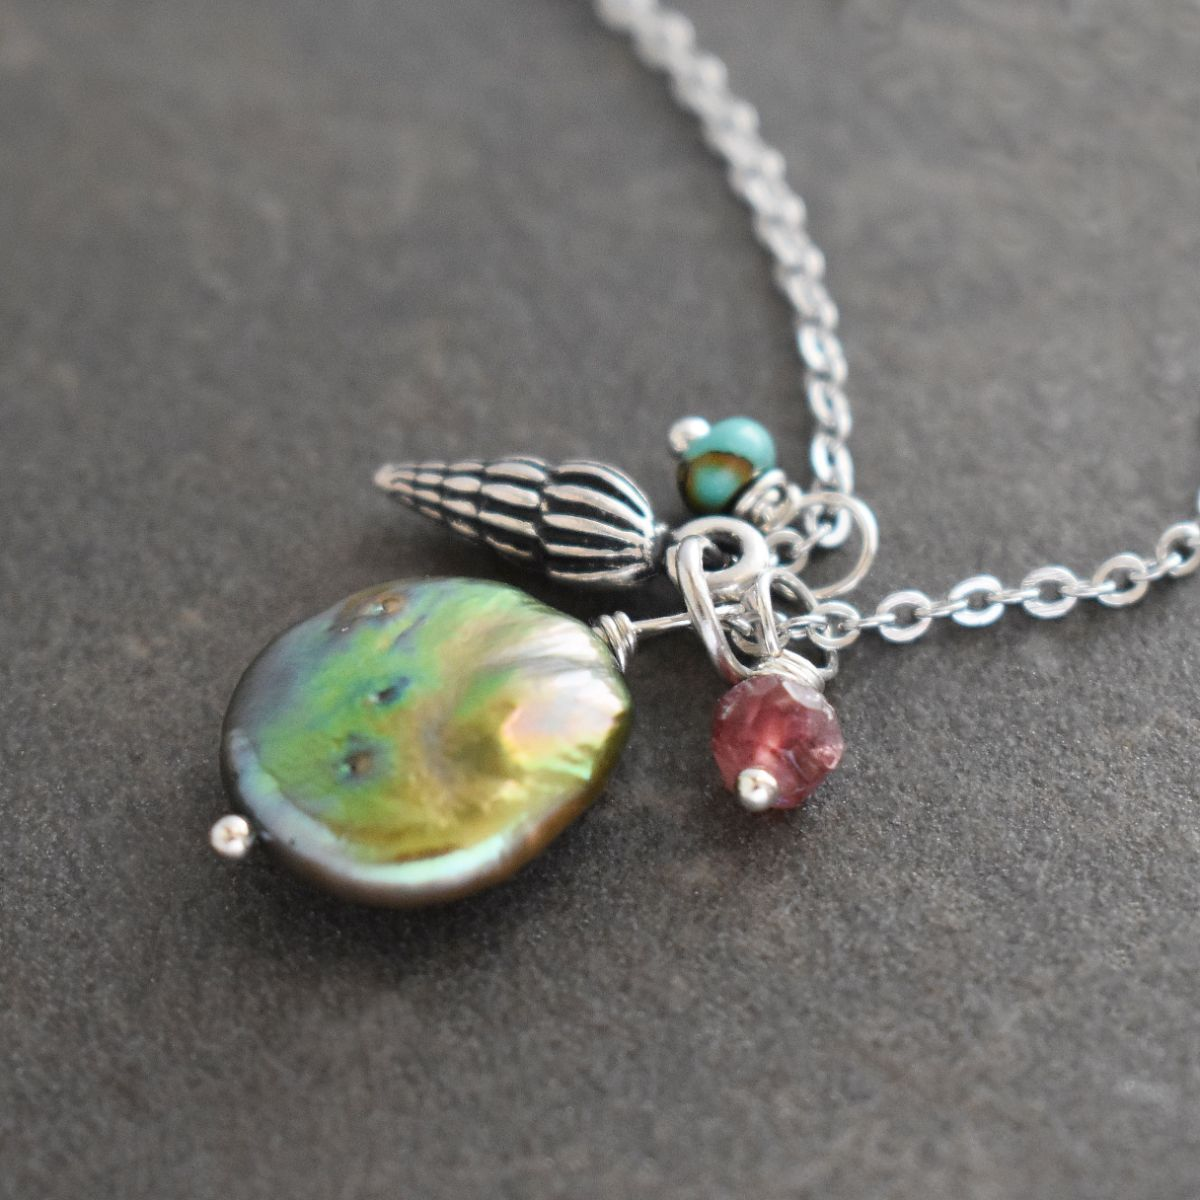 Wentletrap seashell with green coin pearl and gemstone pendant